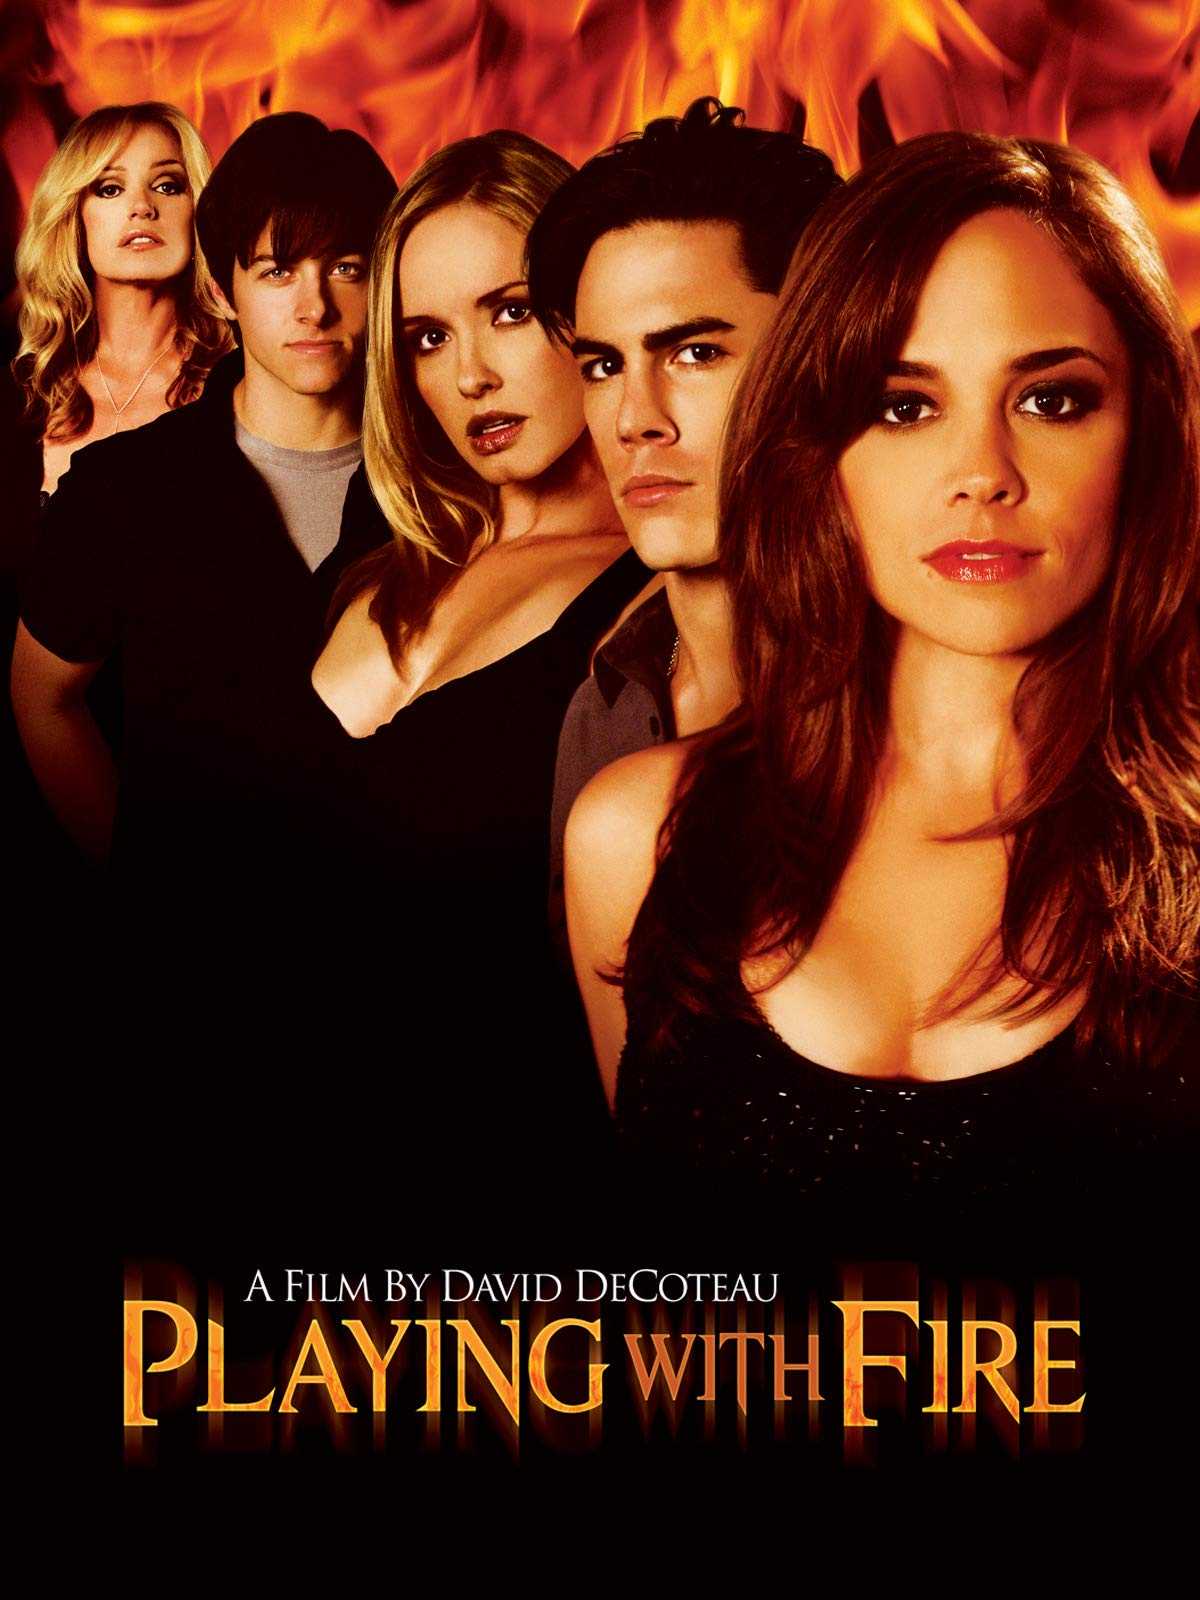 Watch Playing With Fire Prime Video